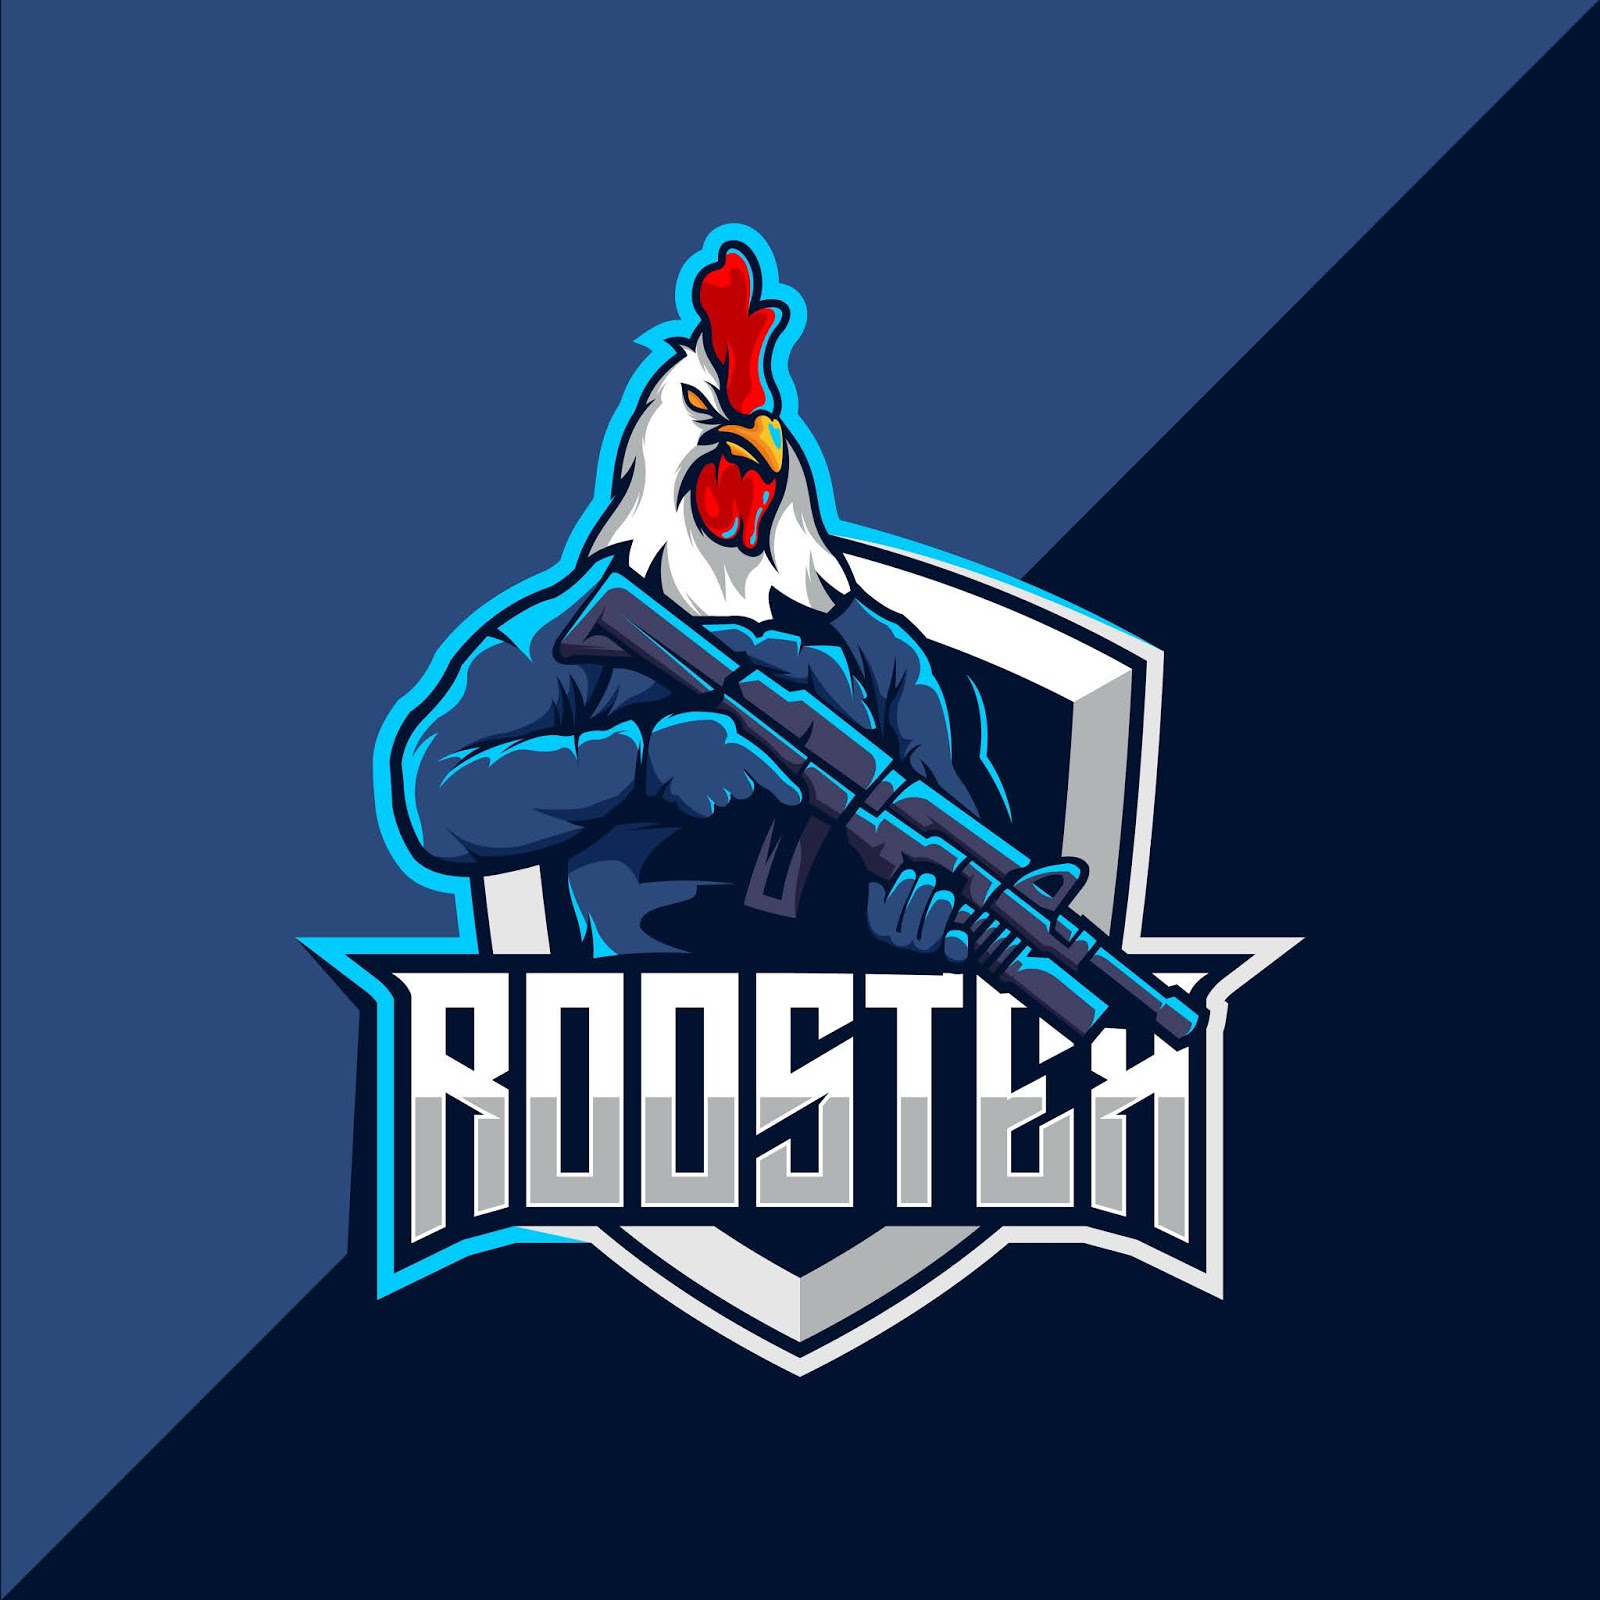 Rooster With Gun Esport Mascot Logo Design Free Download Vector CDR, AI, EPS and PNG Formats